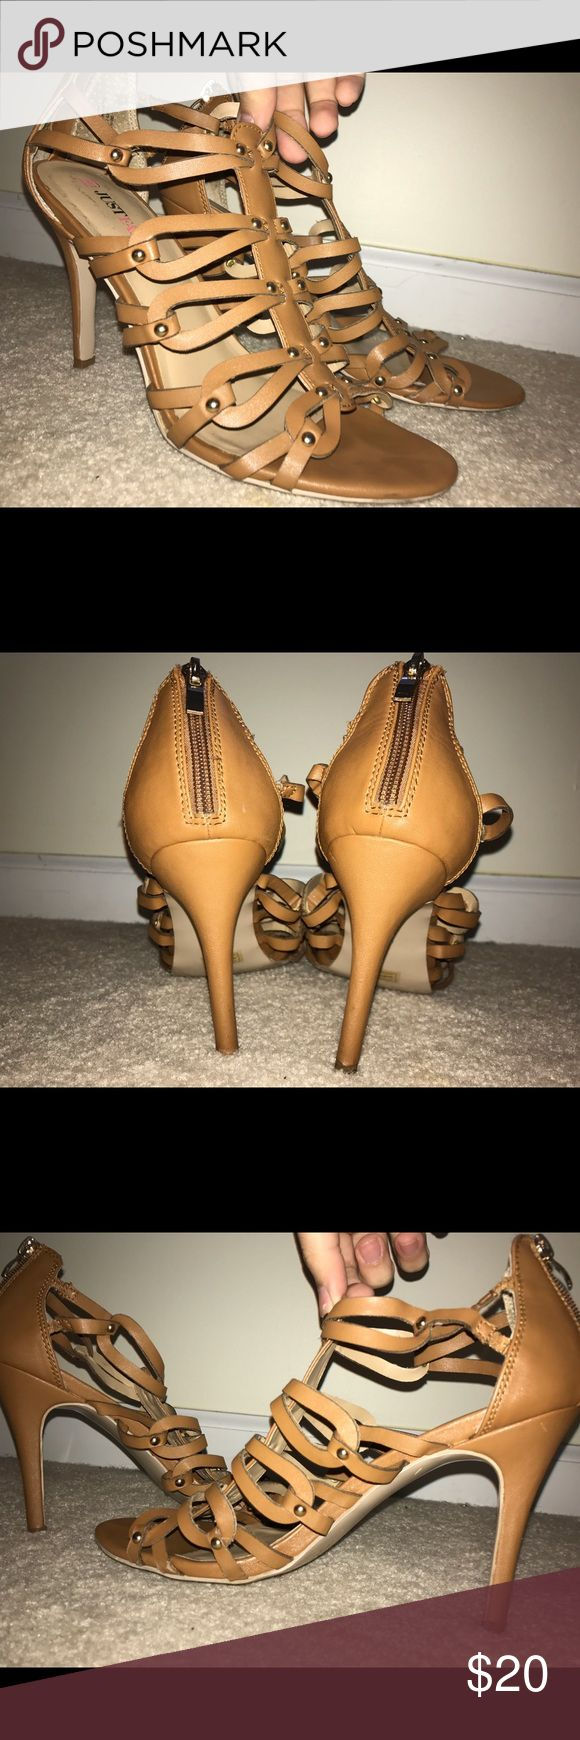 Tan Heels Tan with gold accentuated details. Features a zipper close. PERFECT for prom coming up!! These are comfy. They are not good for wide feet. Pair these with virtually anything! Worn three times. Good quality and condition! Comes from a non-smoking and pet free home. *final price, no I don't trade; if you want to save $, use my bundle discount* Just Fab Shoes Heels